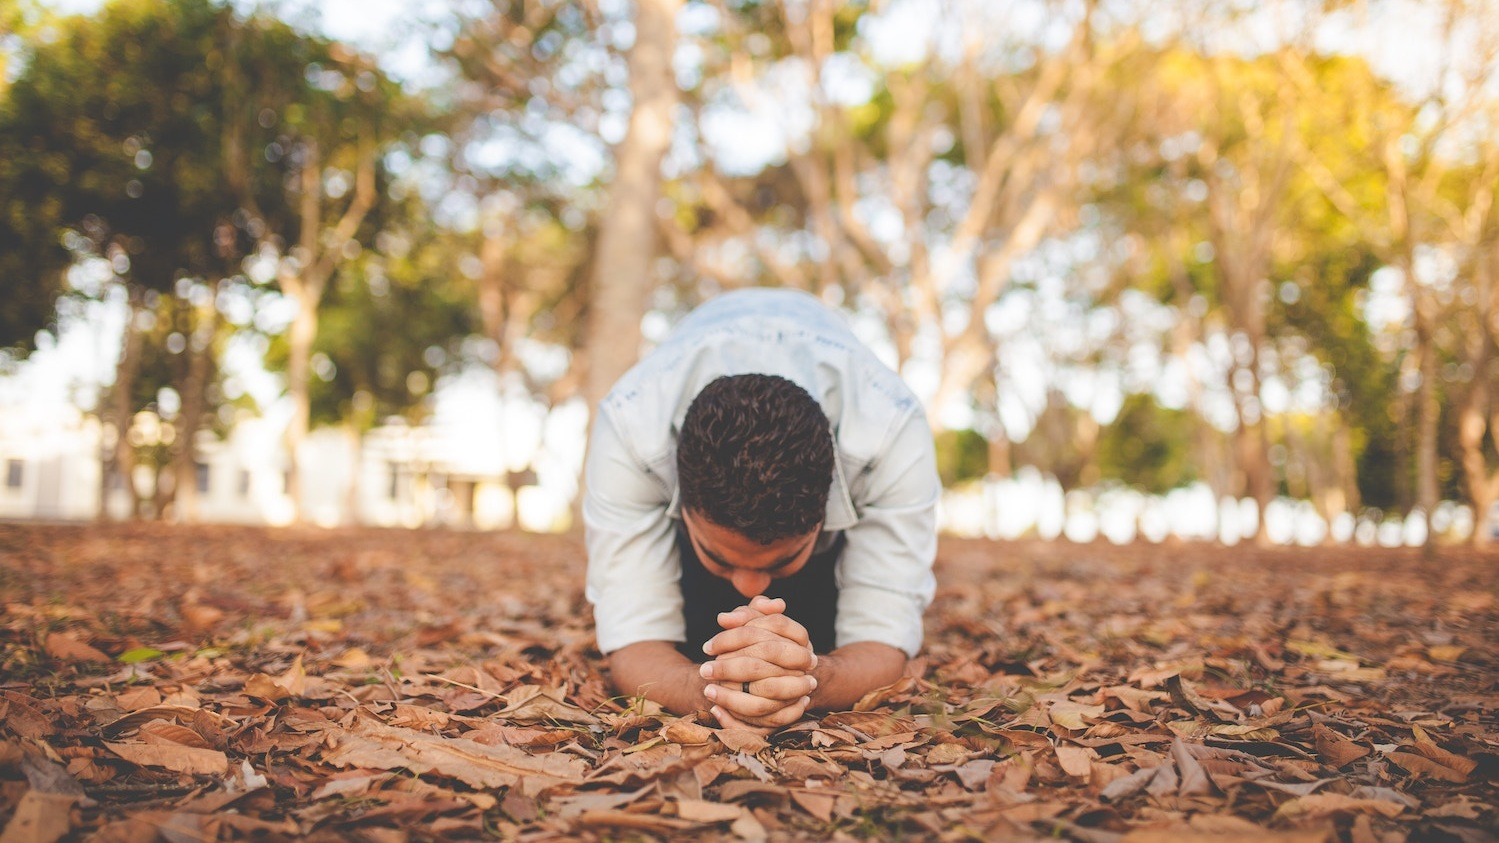 A person kneeling on the ground in prayer